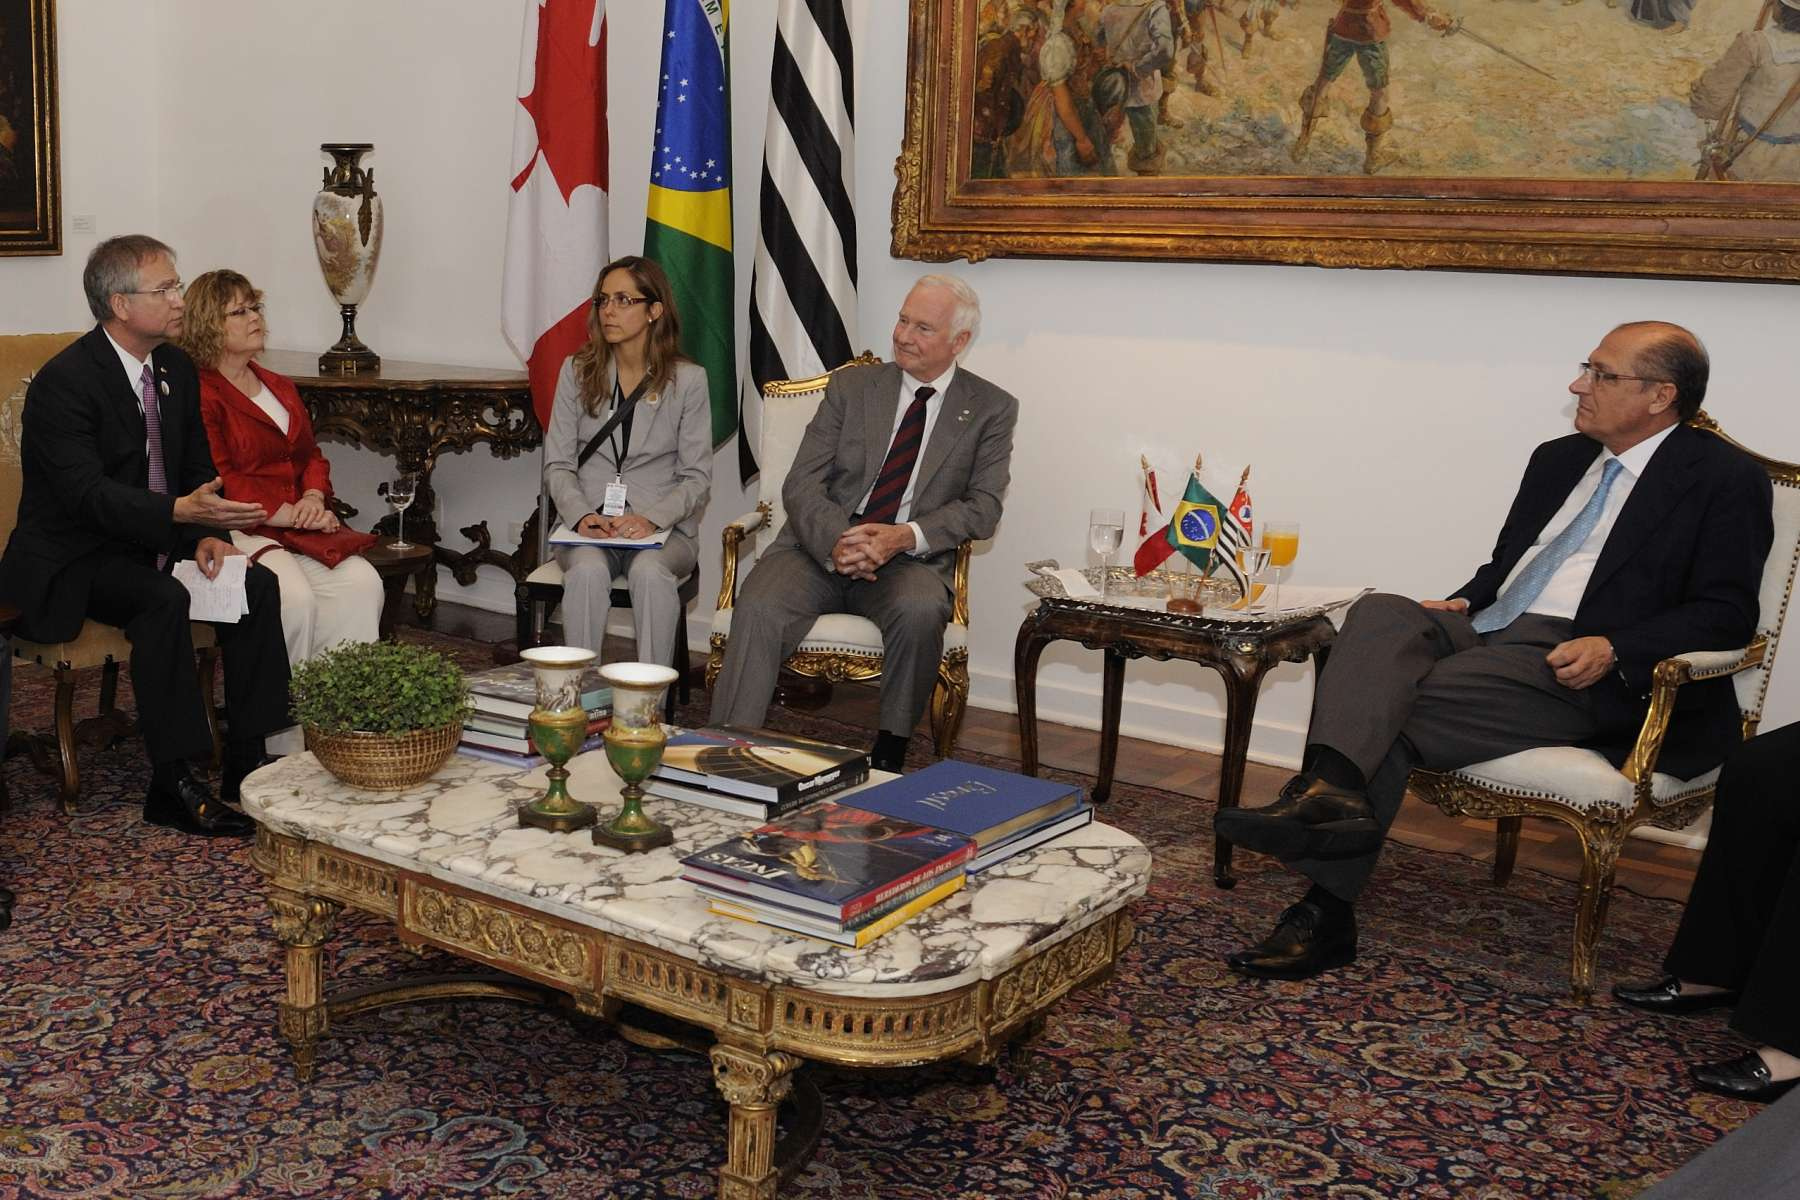 Selected members of the Canadian delegation also took part in the courtesy Call with the Governor of the State of São Paulo.